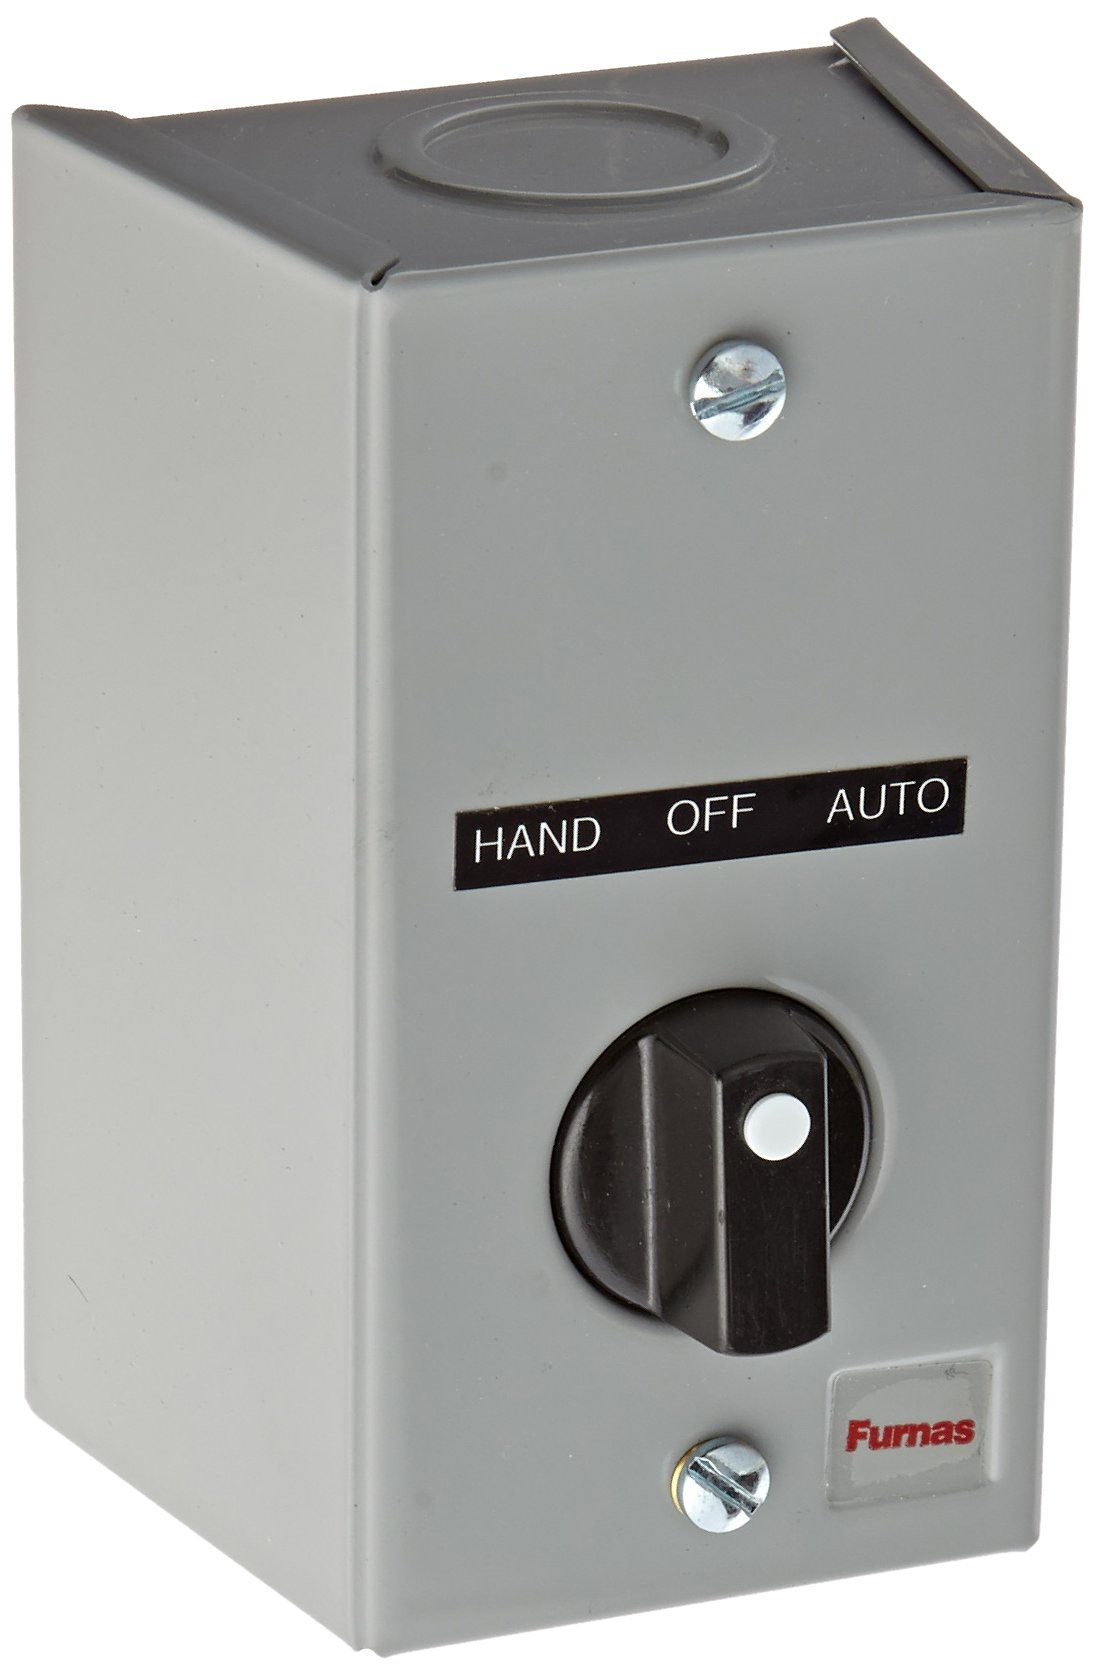 Siemens 50AA3C3 Surface Mount Enclosure, 3 Position Selector Switch, ''HAND-OFF-AUTO'' Labeled, 2 NO Contact Block